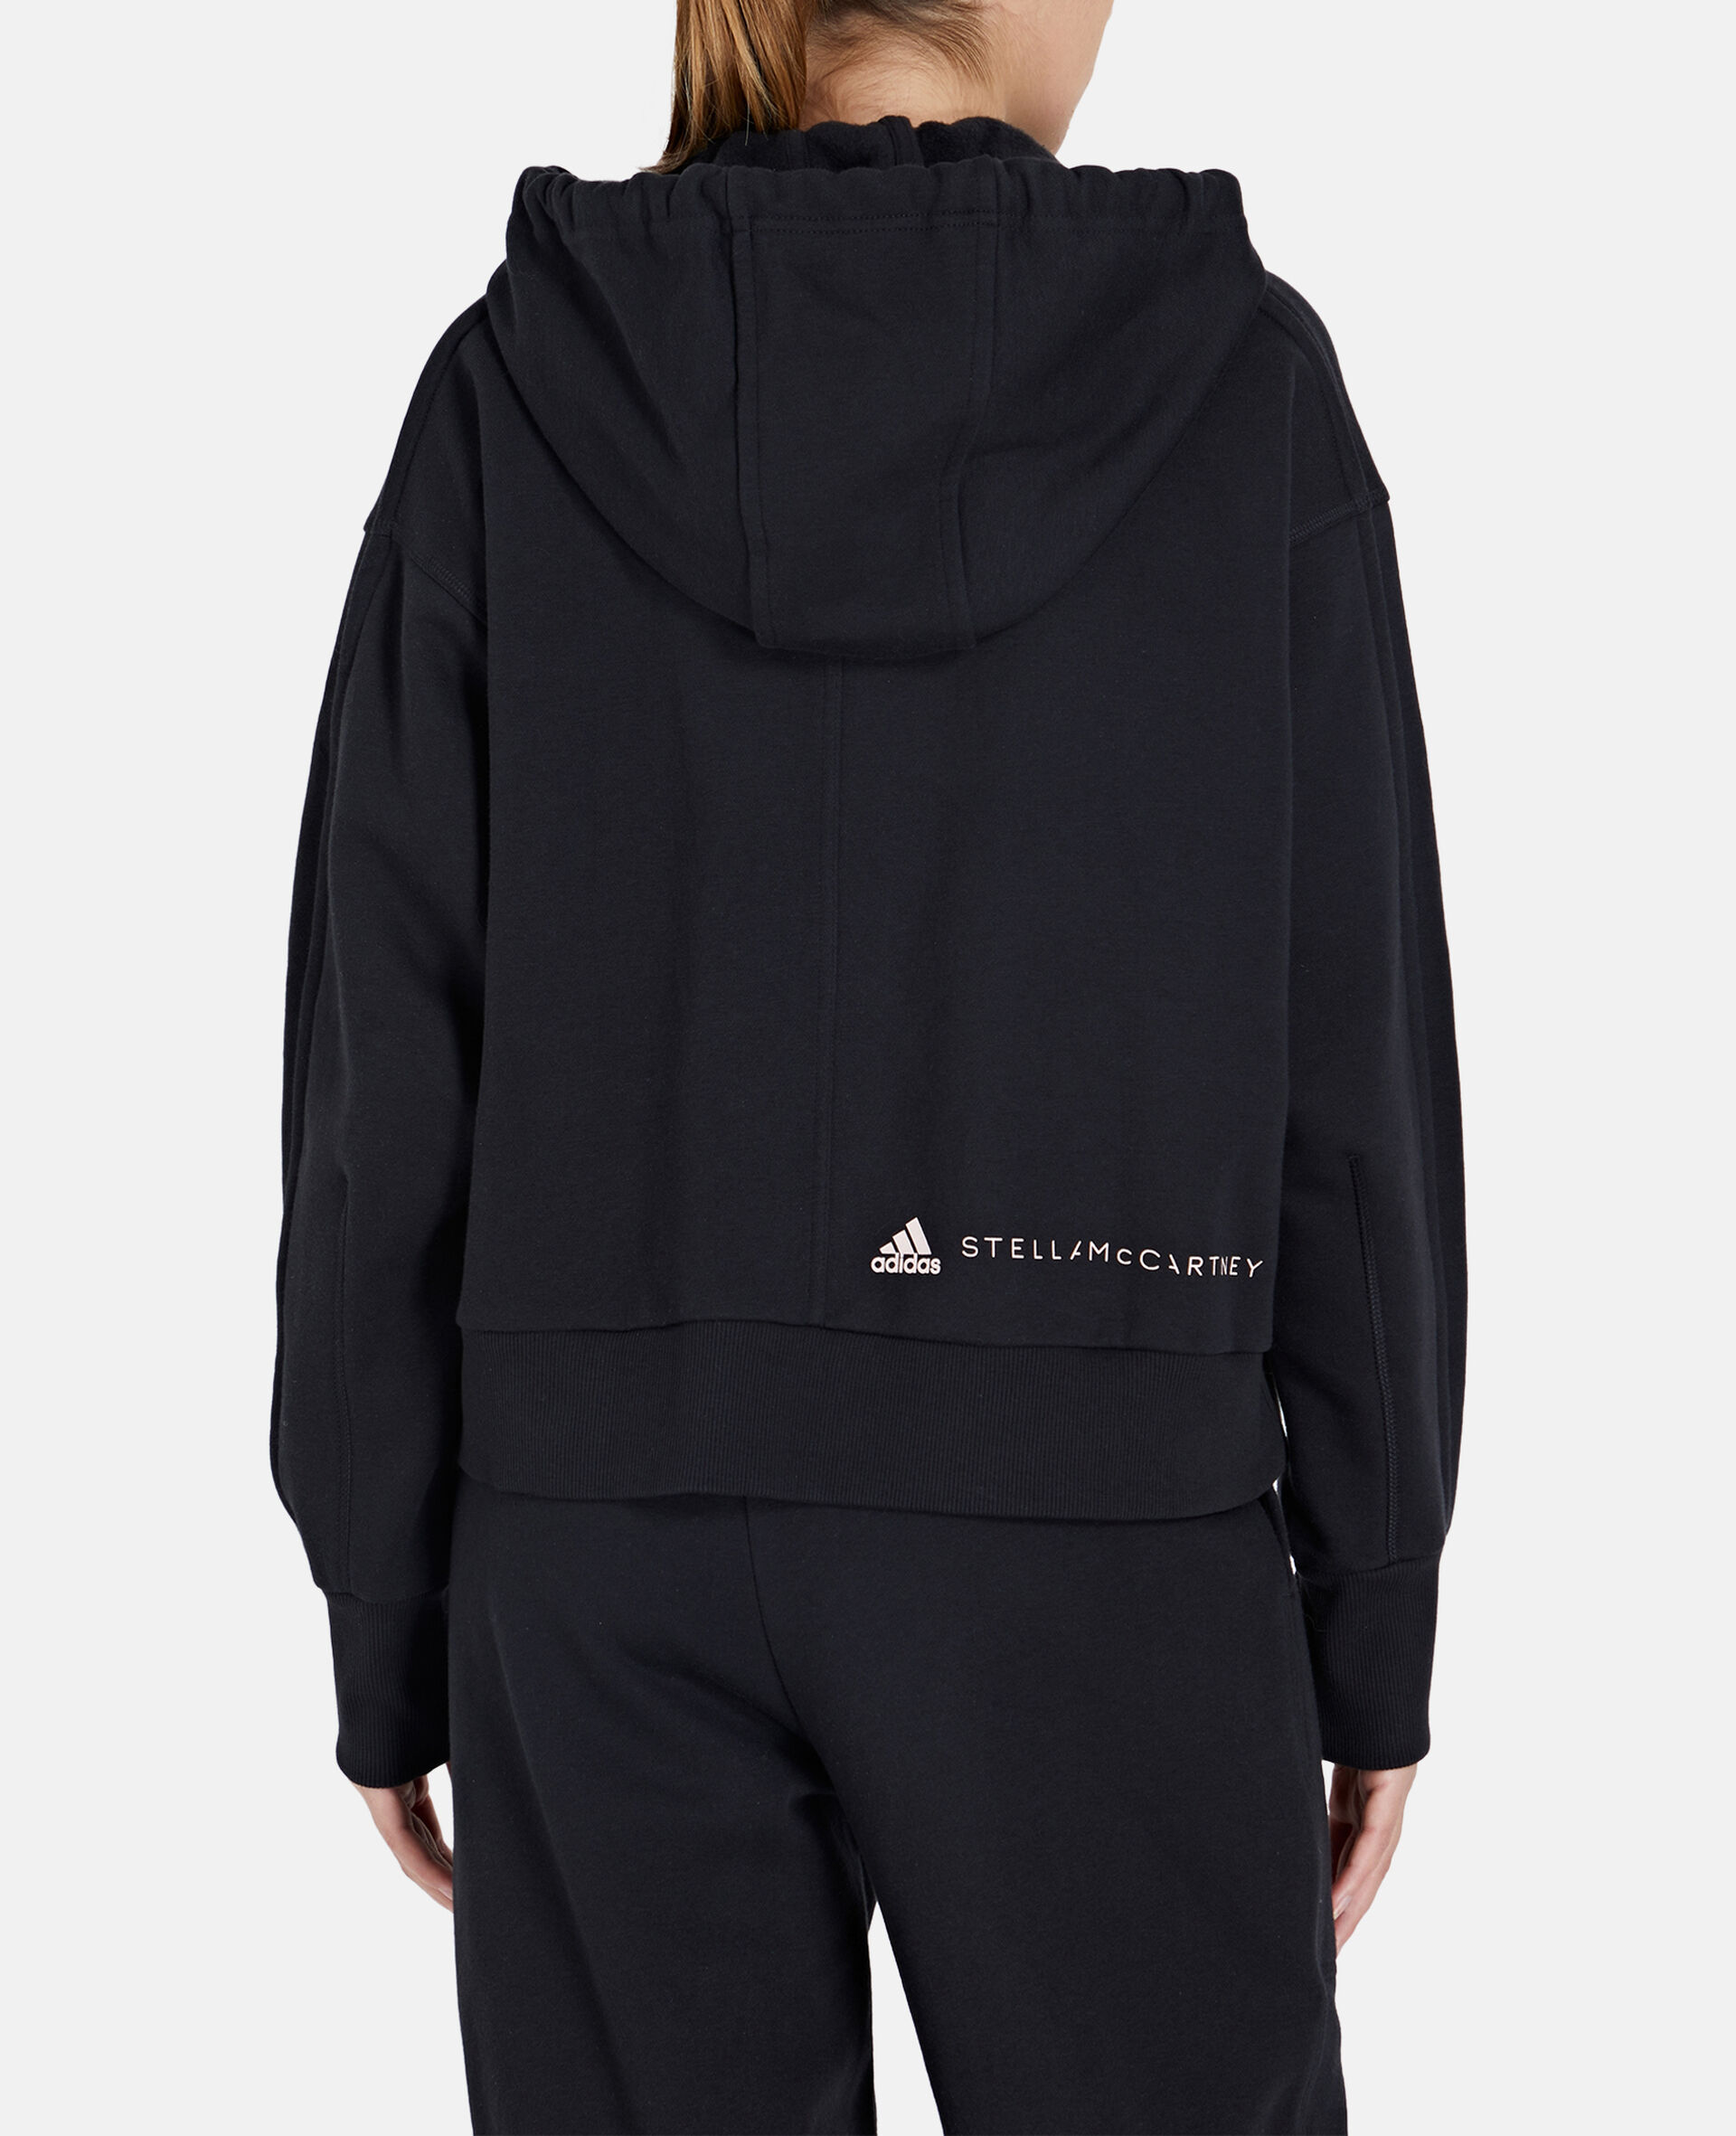 Black Full-zipper Cropped Hoodie-Black-large image number 2